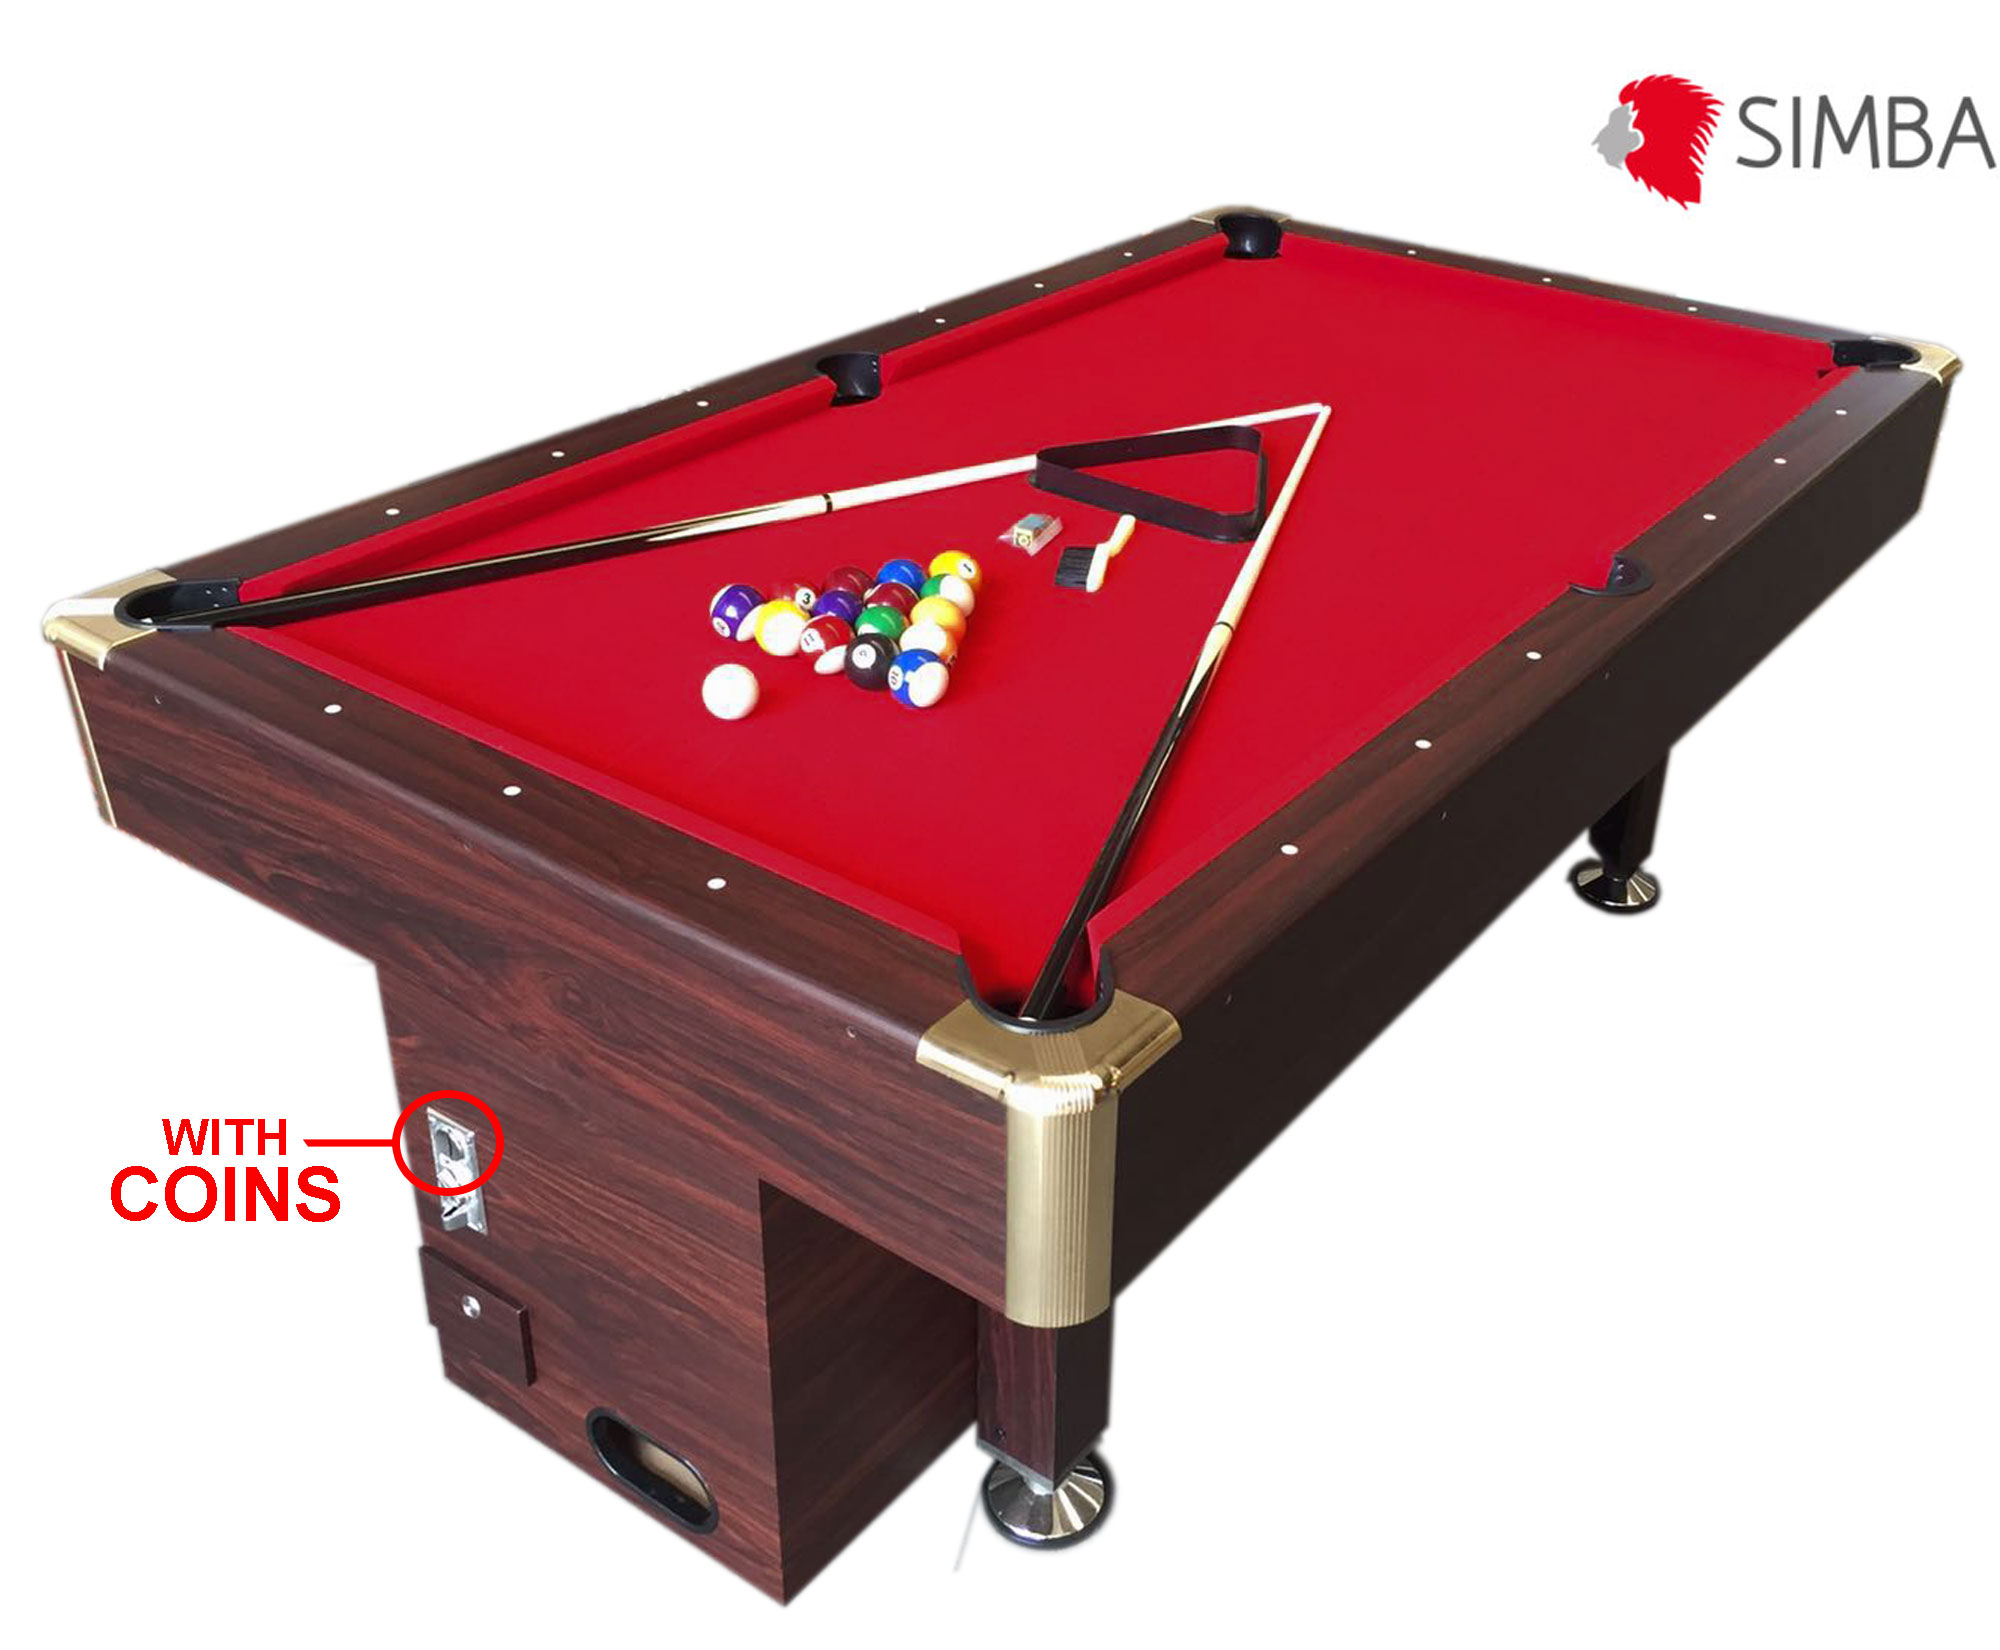 Ft Pool Table Billiard With Coin Machine For Public Places Red - 7 ft billiard table